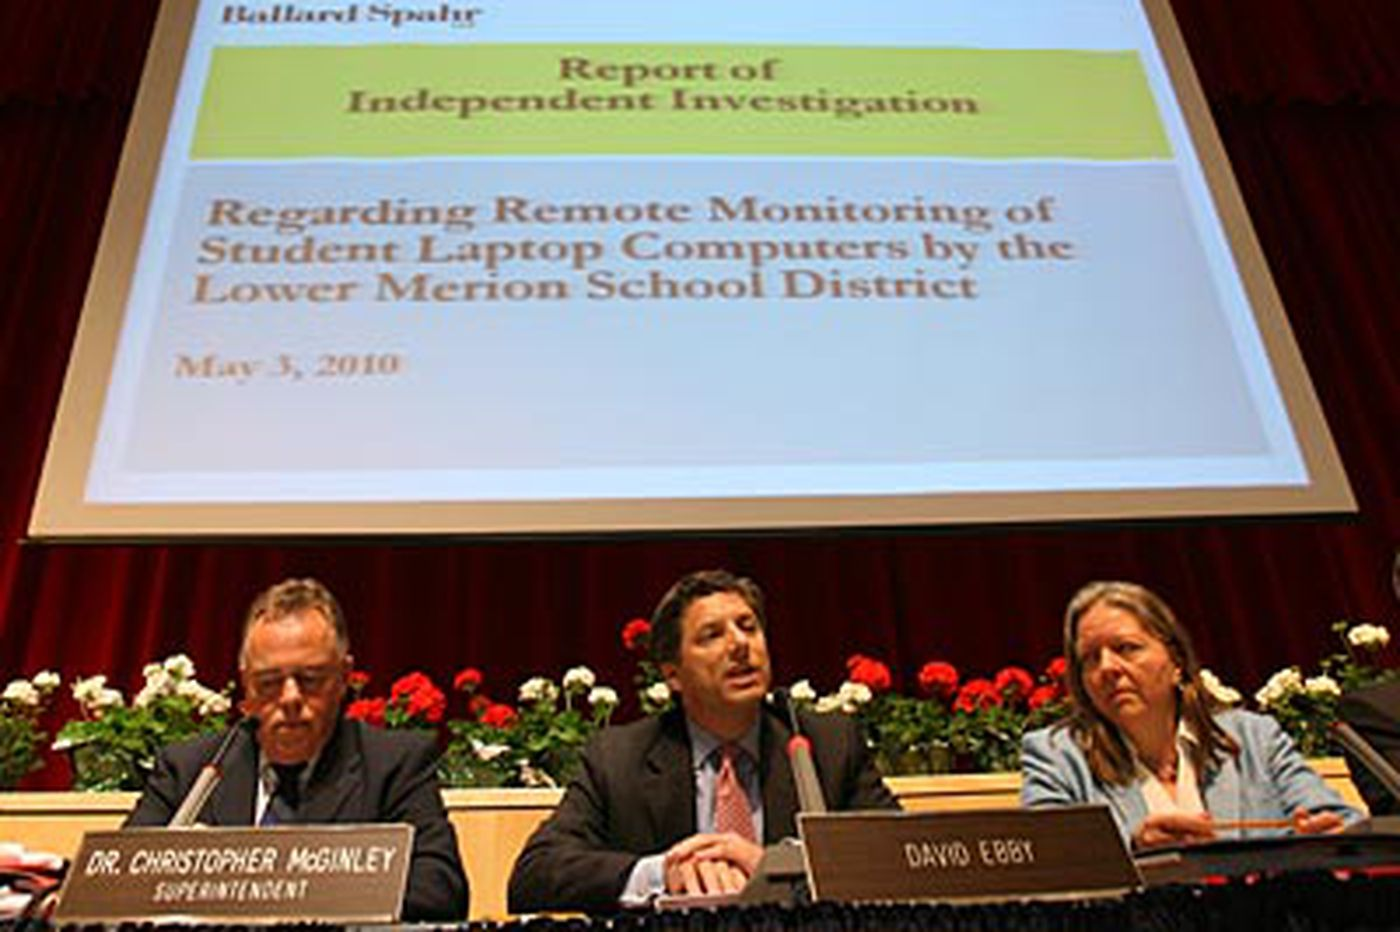 Lower Merion adopts new policies on laptop tracking